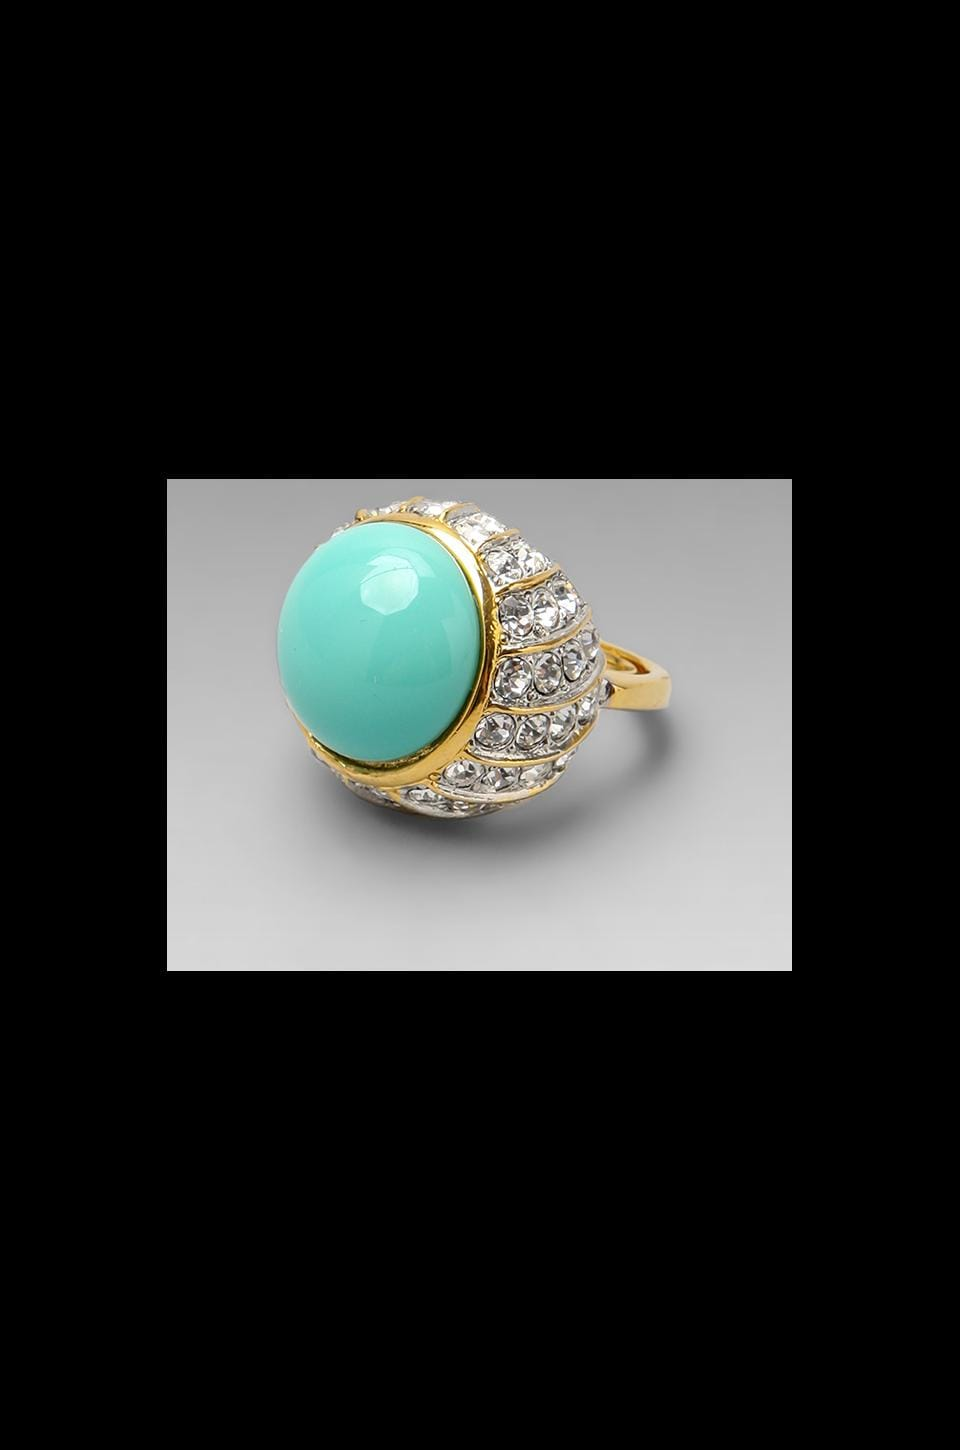 Kenneth Jay Lane Turquoise Center and Rhinestone Cluster Ring in Gold